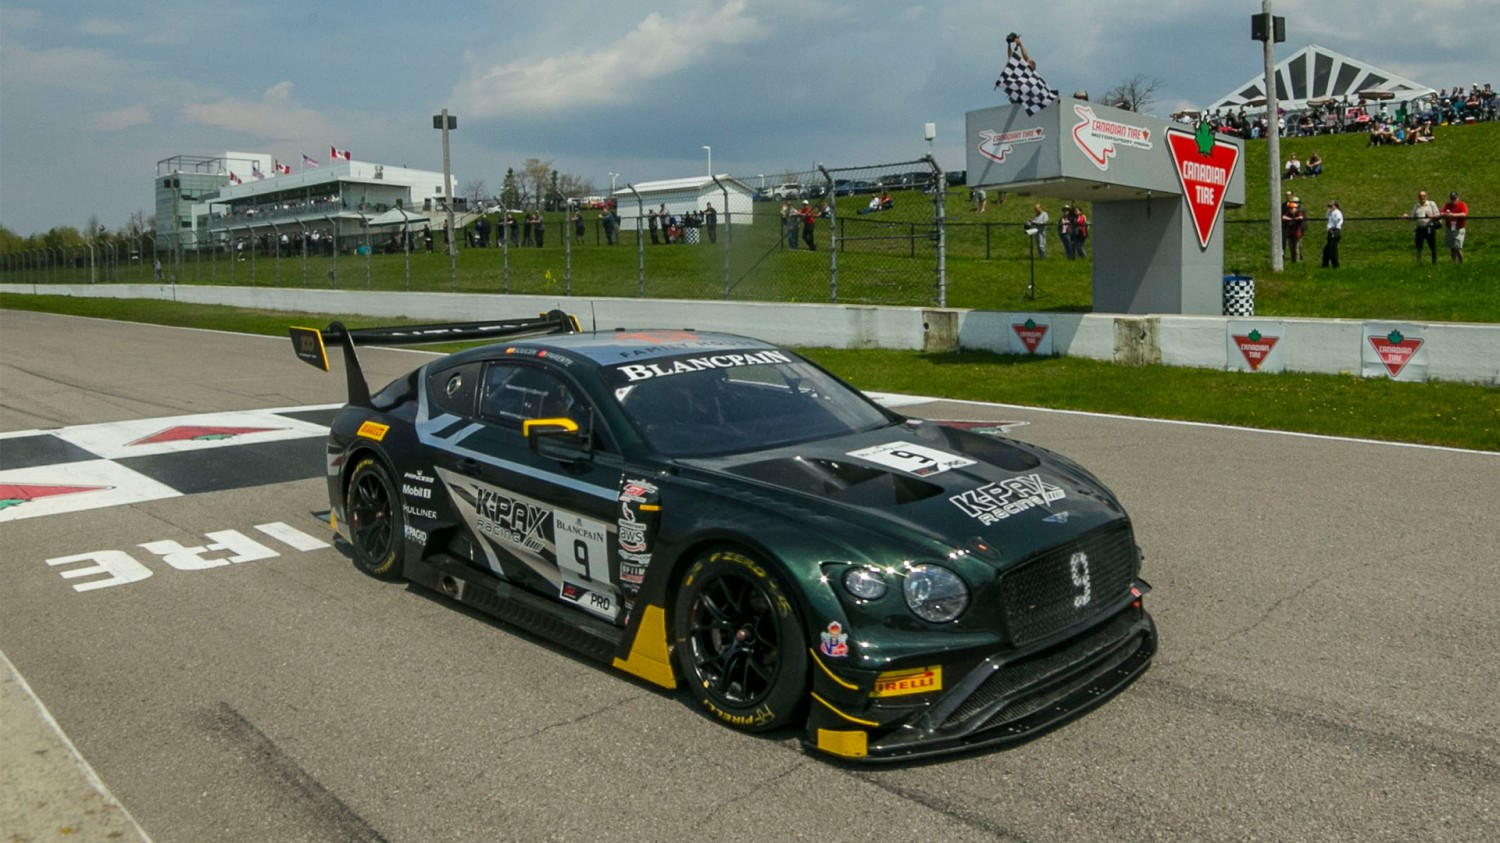 Parente/Soucek Win Blancpain GT World Challenge America Round 6 at Canadian Tire Motorsport Park